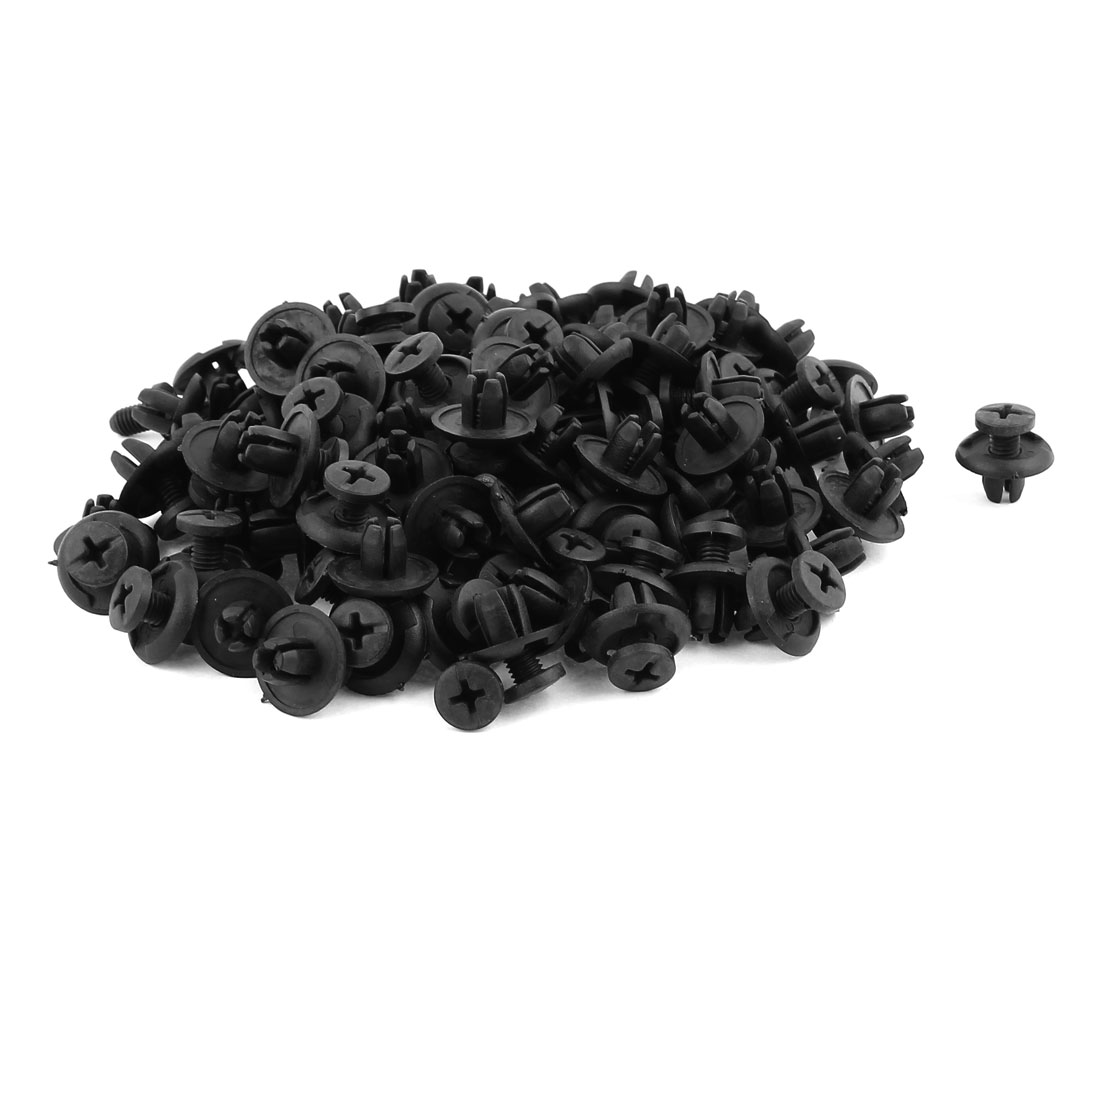 100pcs 8mm Dia Hole 20mm Head Black Plastic Rivets Fastener Fender Car Bumper Push Clips